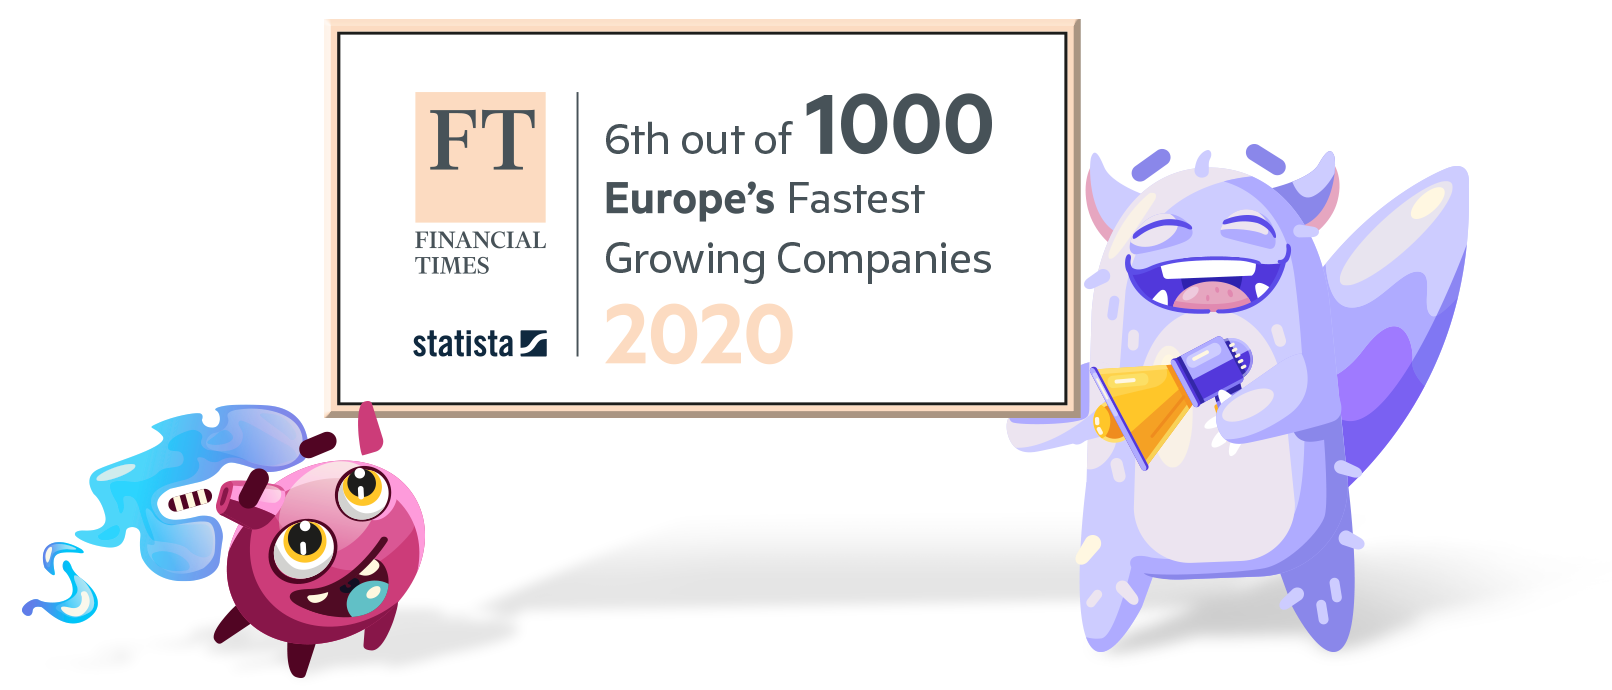 1000 Europe's Fastest Growing Companies